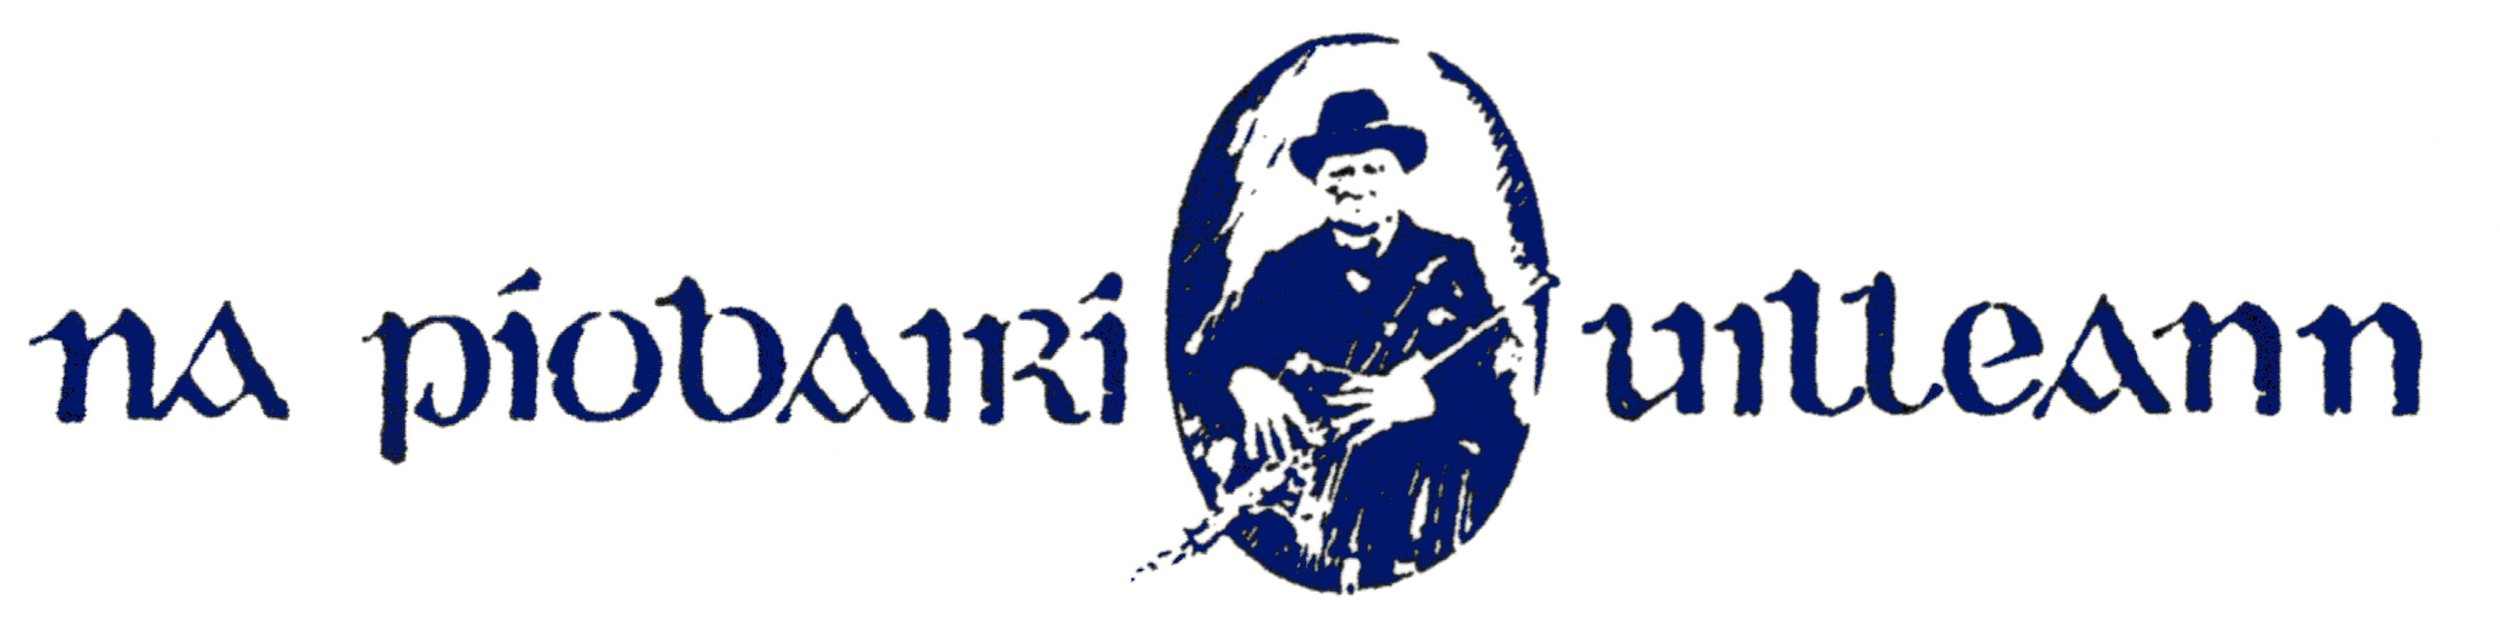 Looking forward to teaching the reed making workshop at Na Píobairi Uilleanns Breandán Breathnach Commemoration event. It will be held at 15 Henrietta St, Dublin on Saturday 5th December. Classes run from 10 am to 3;30pm. For booking, contact Na Píobairí Uilleann on 018730093 or email info@pipers.ie